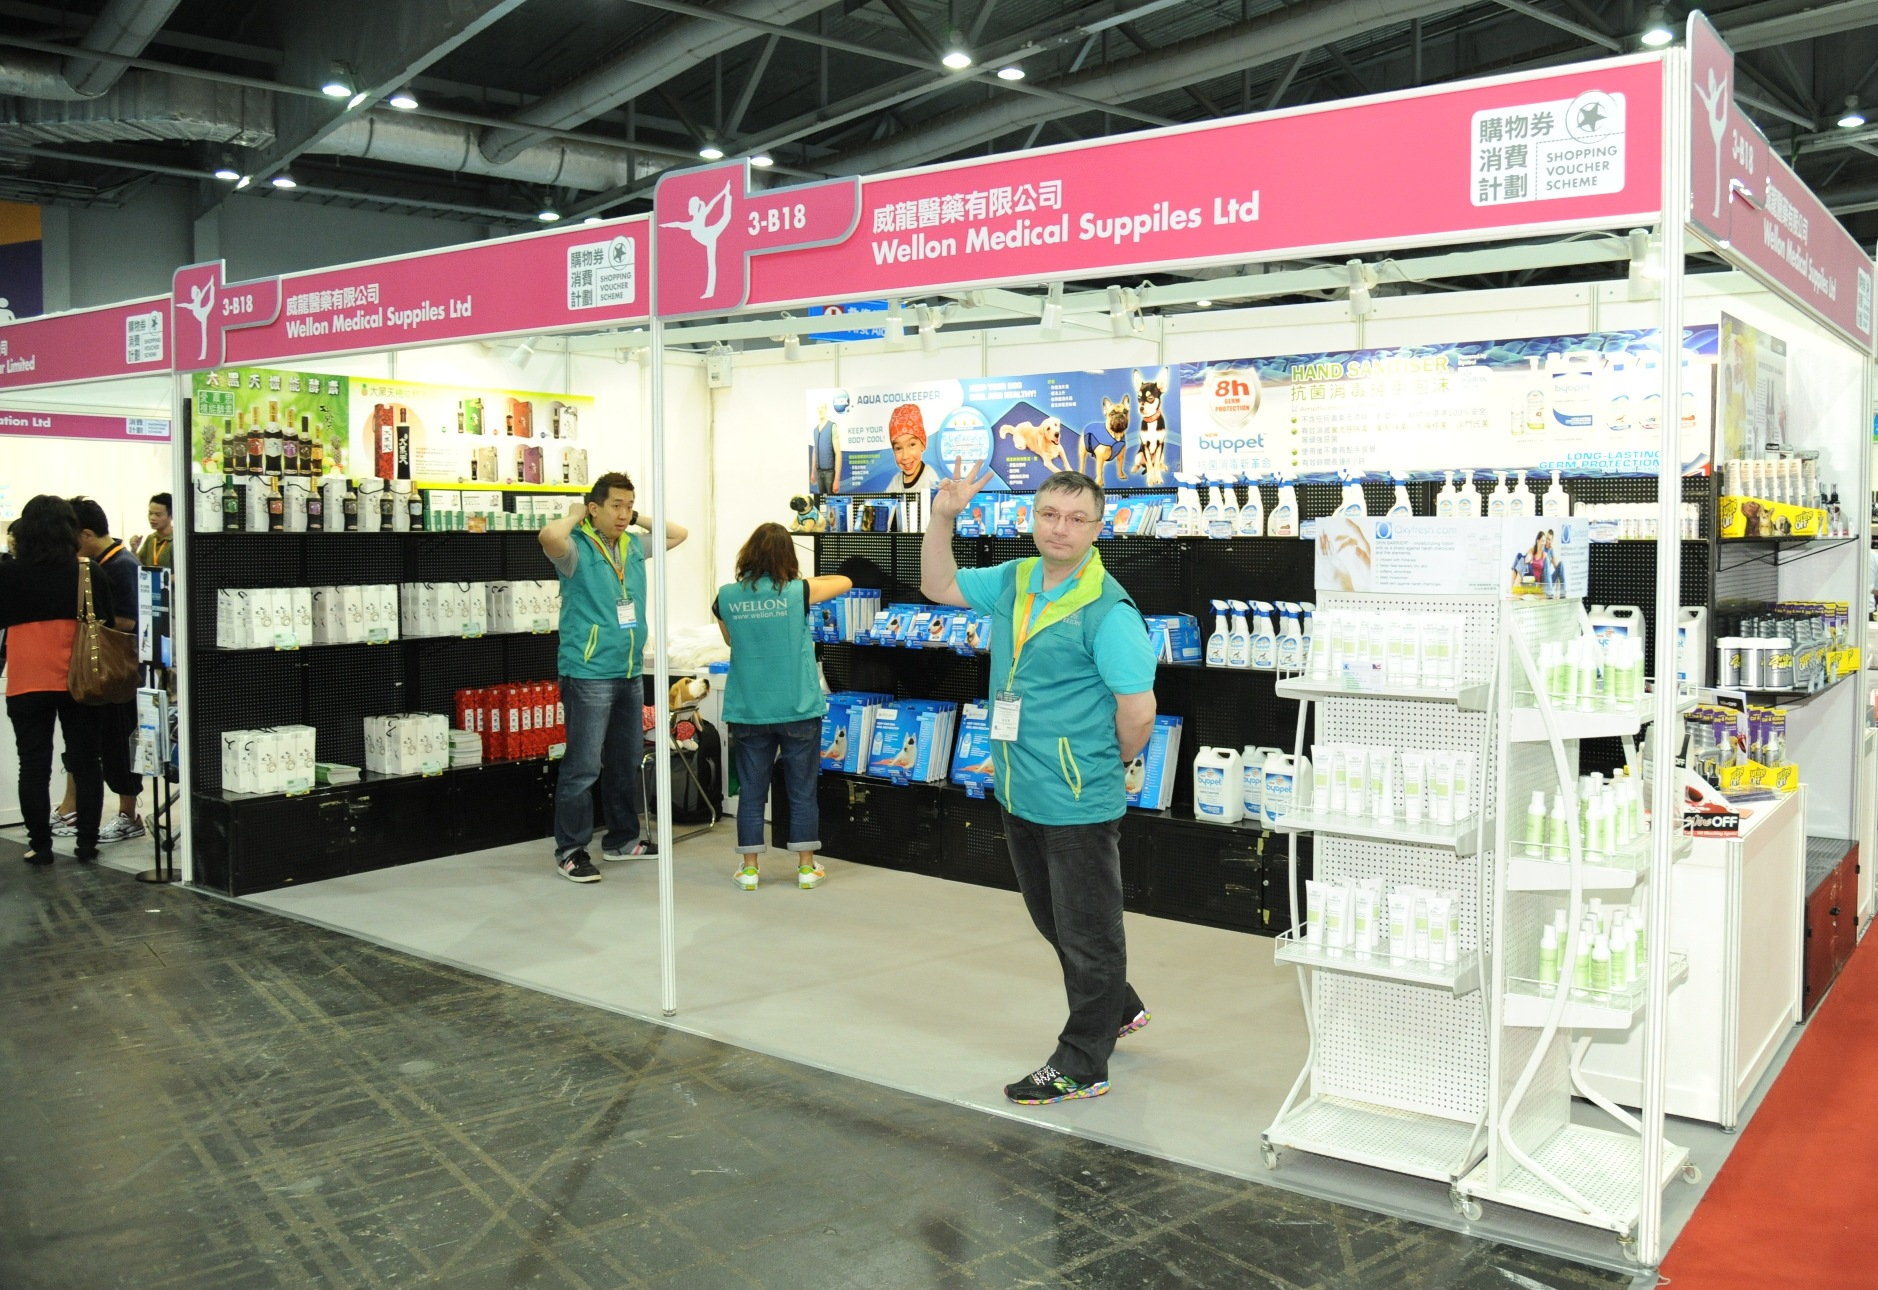 hktdc com - Better Living Expo Opens to Sourcing